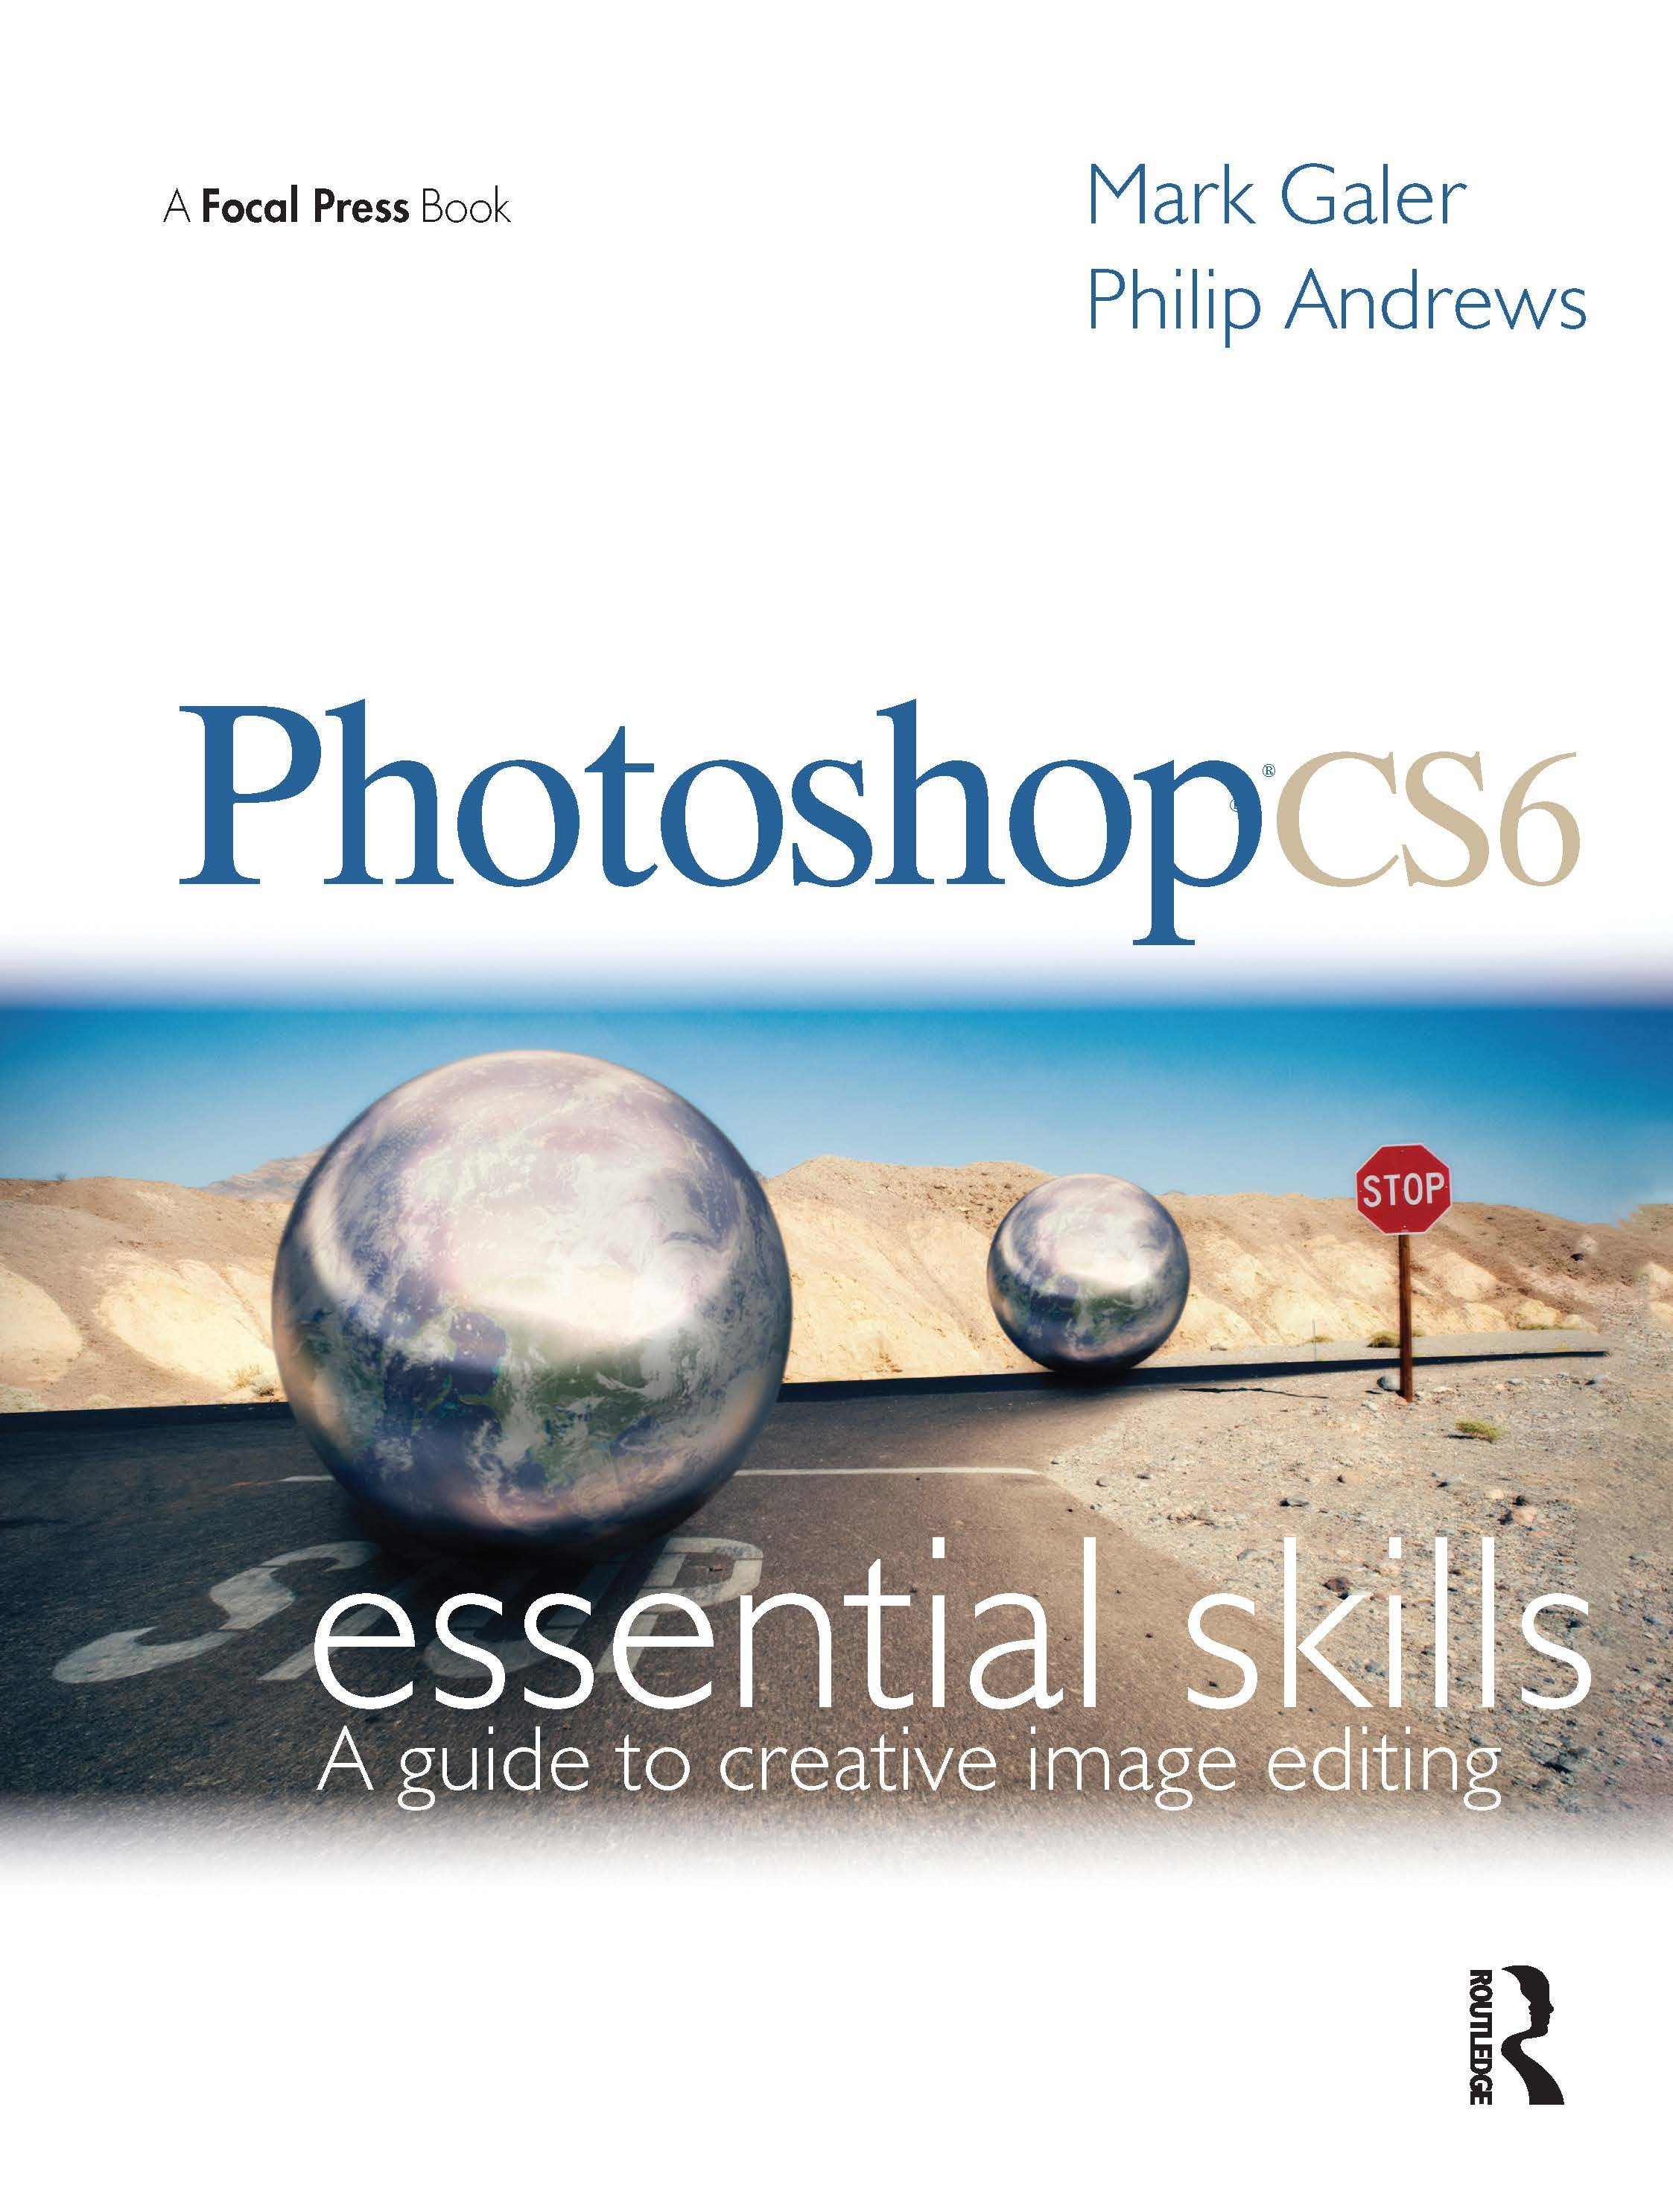 Photoshop CS6: Essential Skills book cover